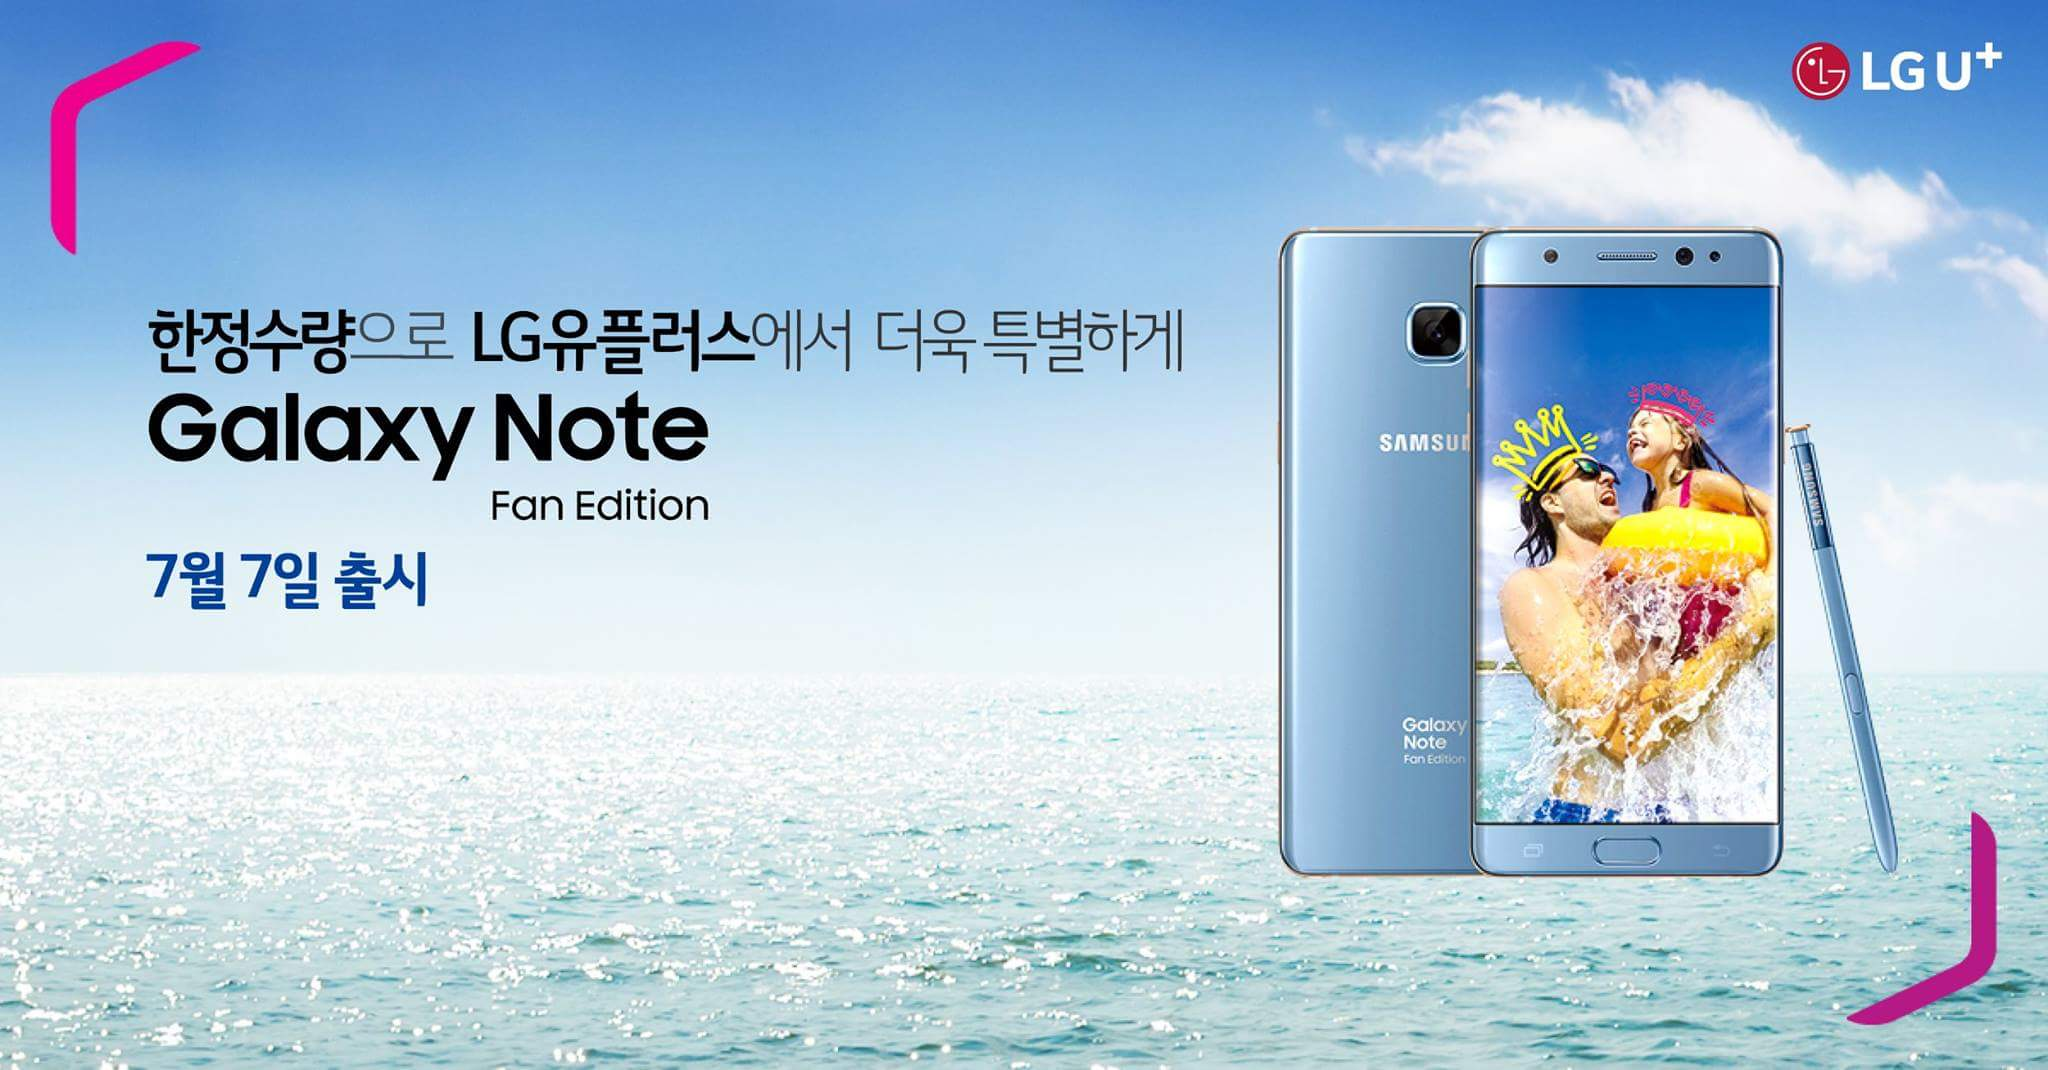 Galaxy Note FE Poster